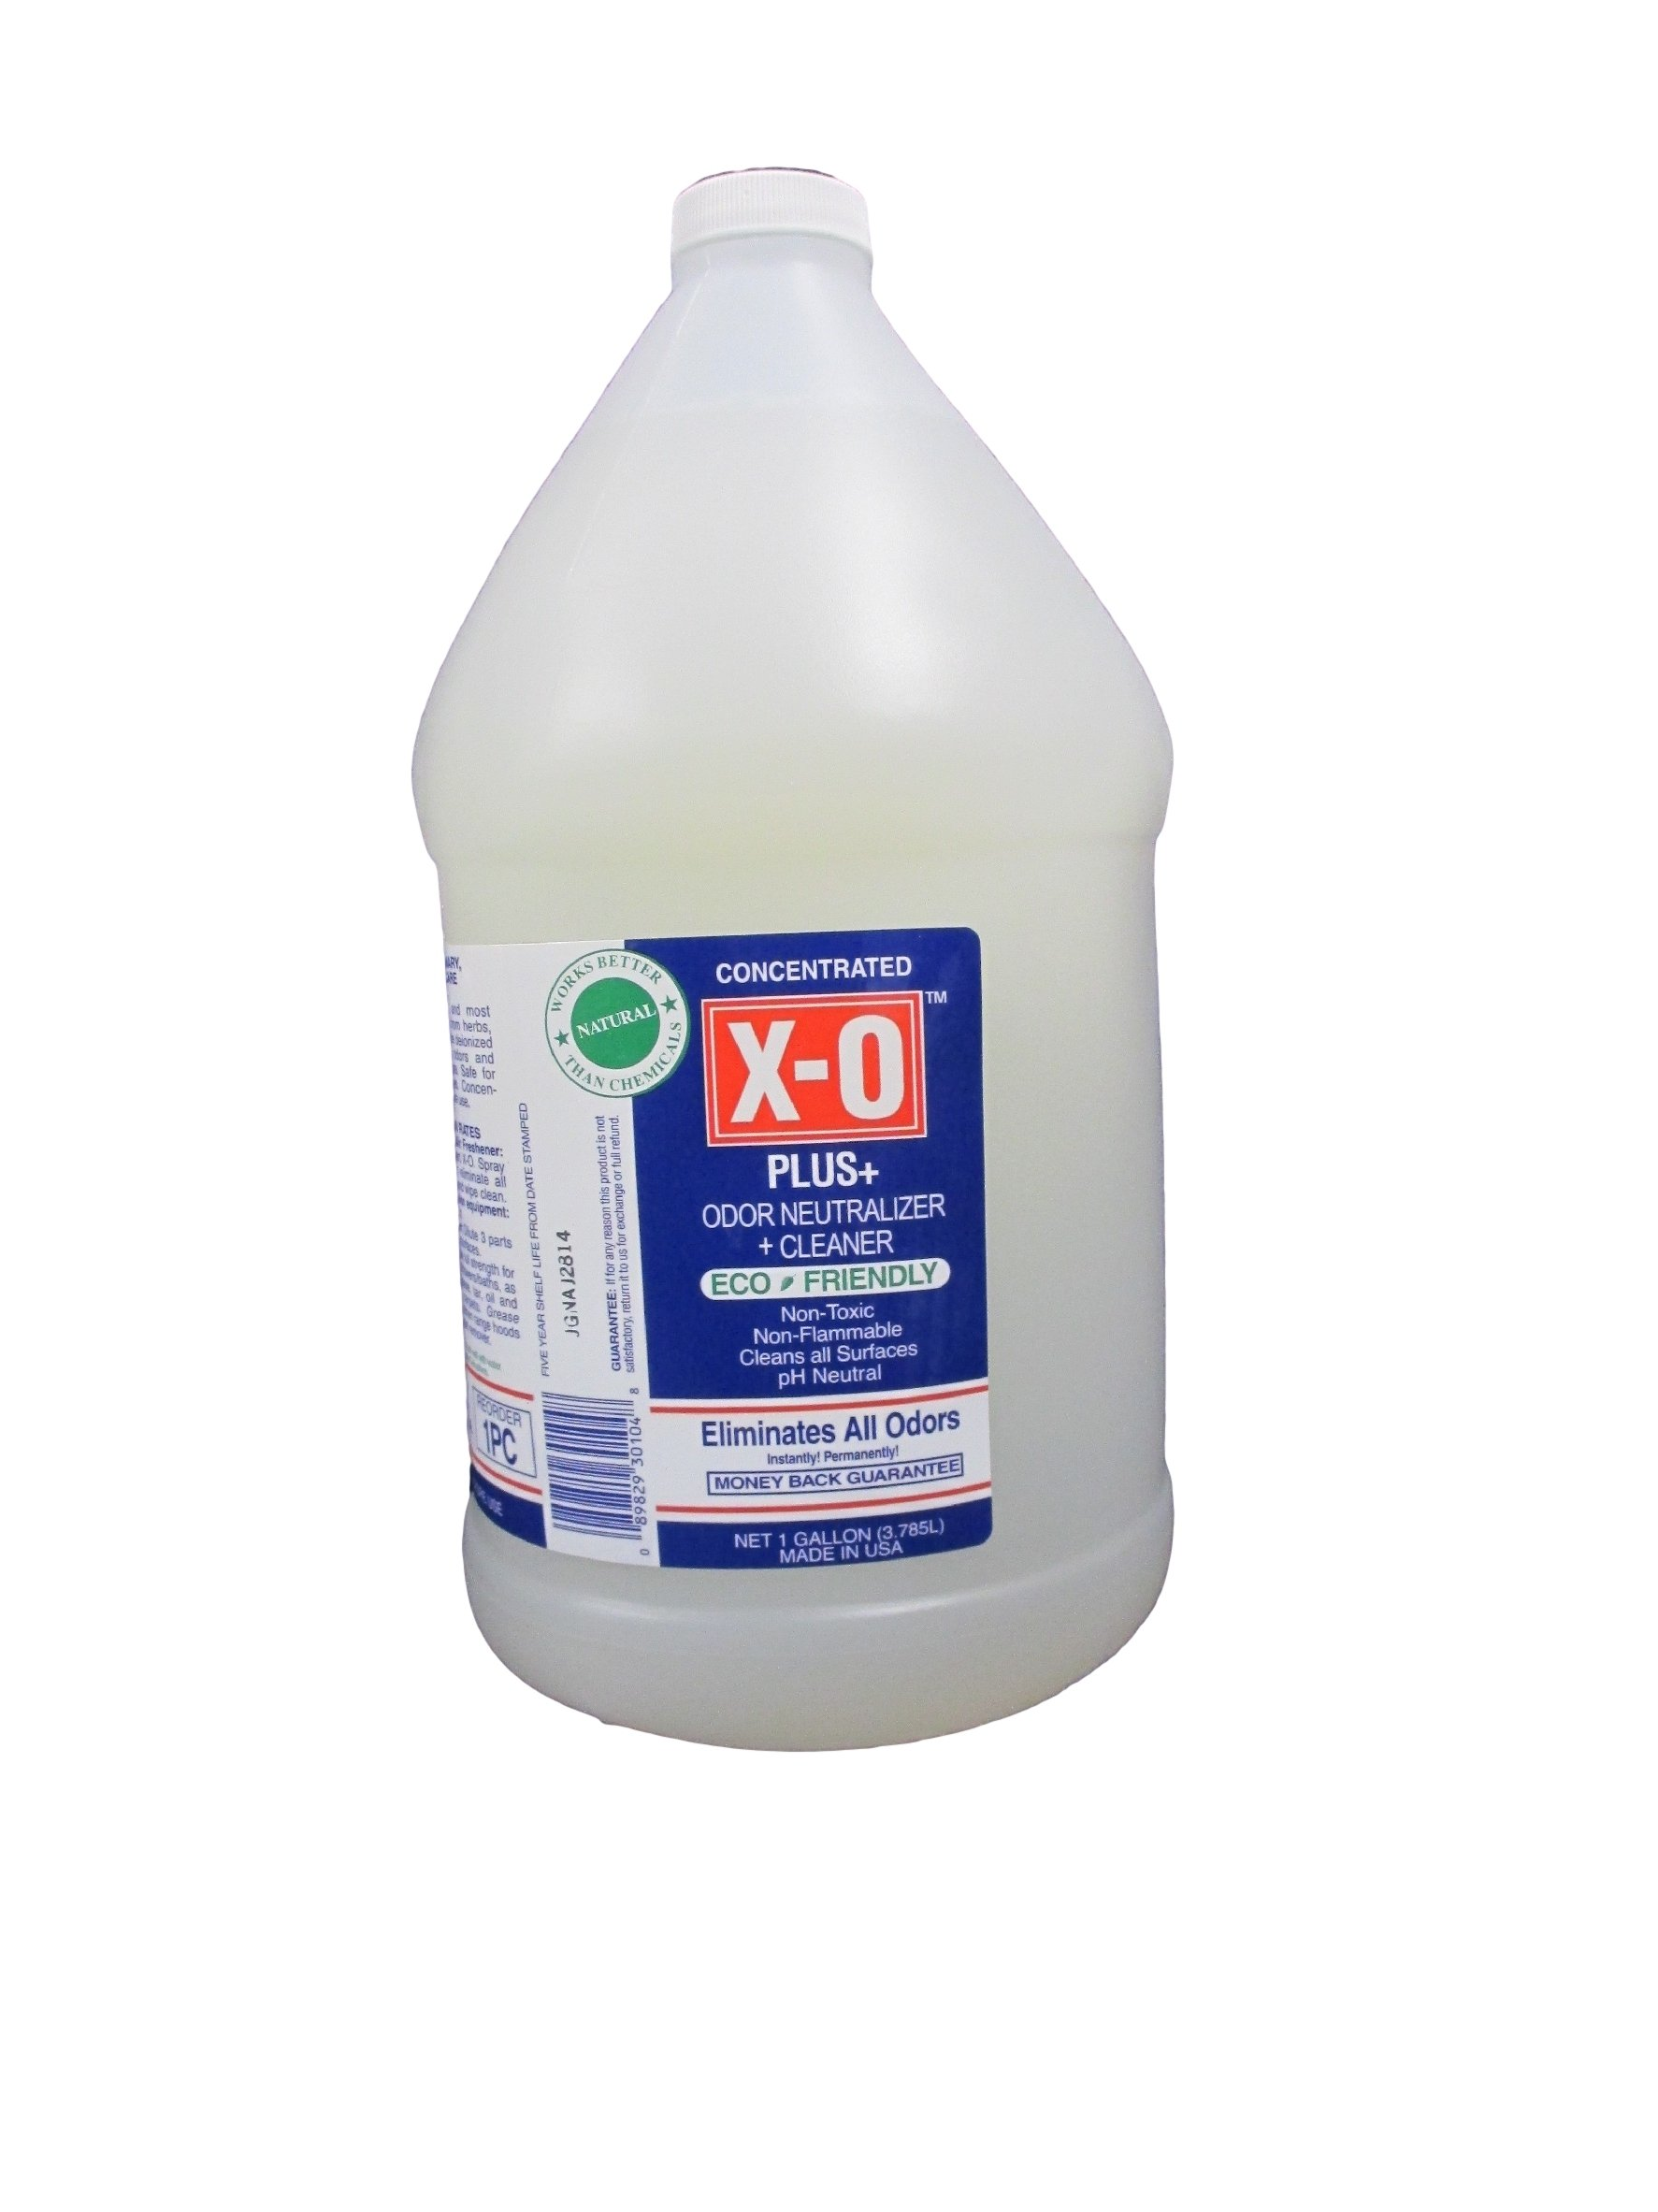 X-O Plus Odor Neutralizer/Cleaner Concetrate, 1-Gallon